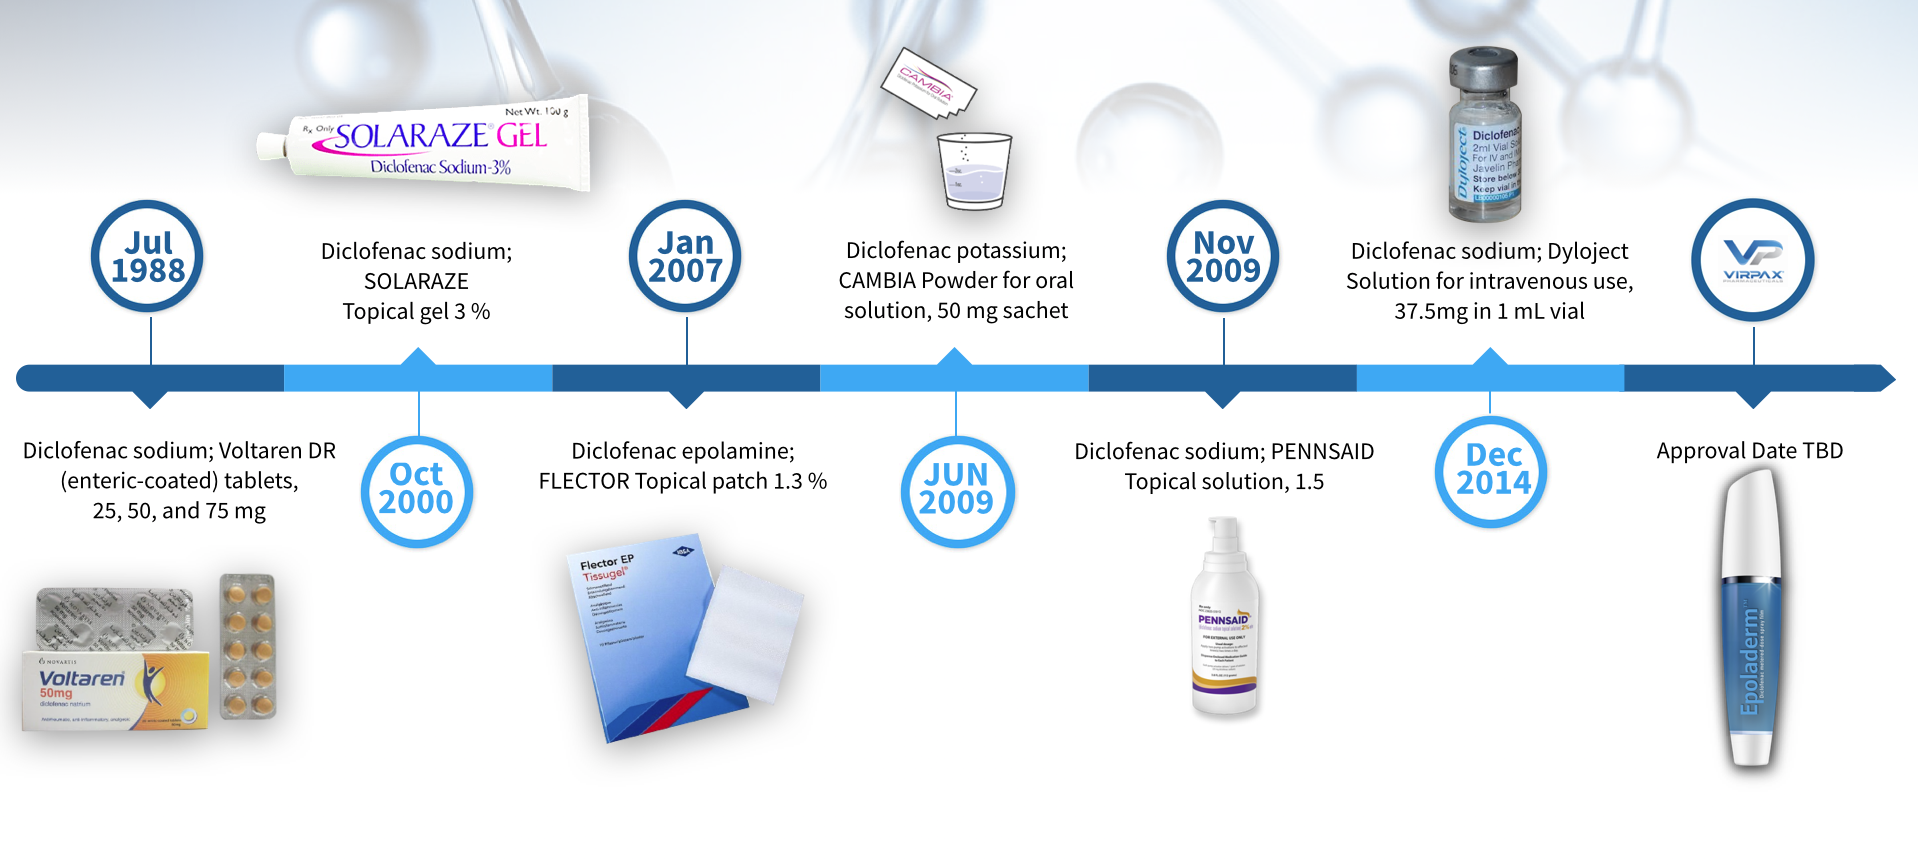 Evolution of Diclofenac Products Using Pharmaceutical Technology